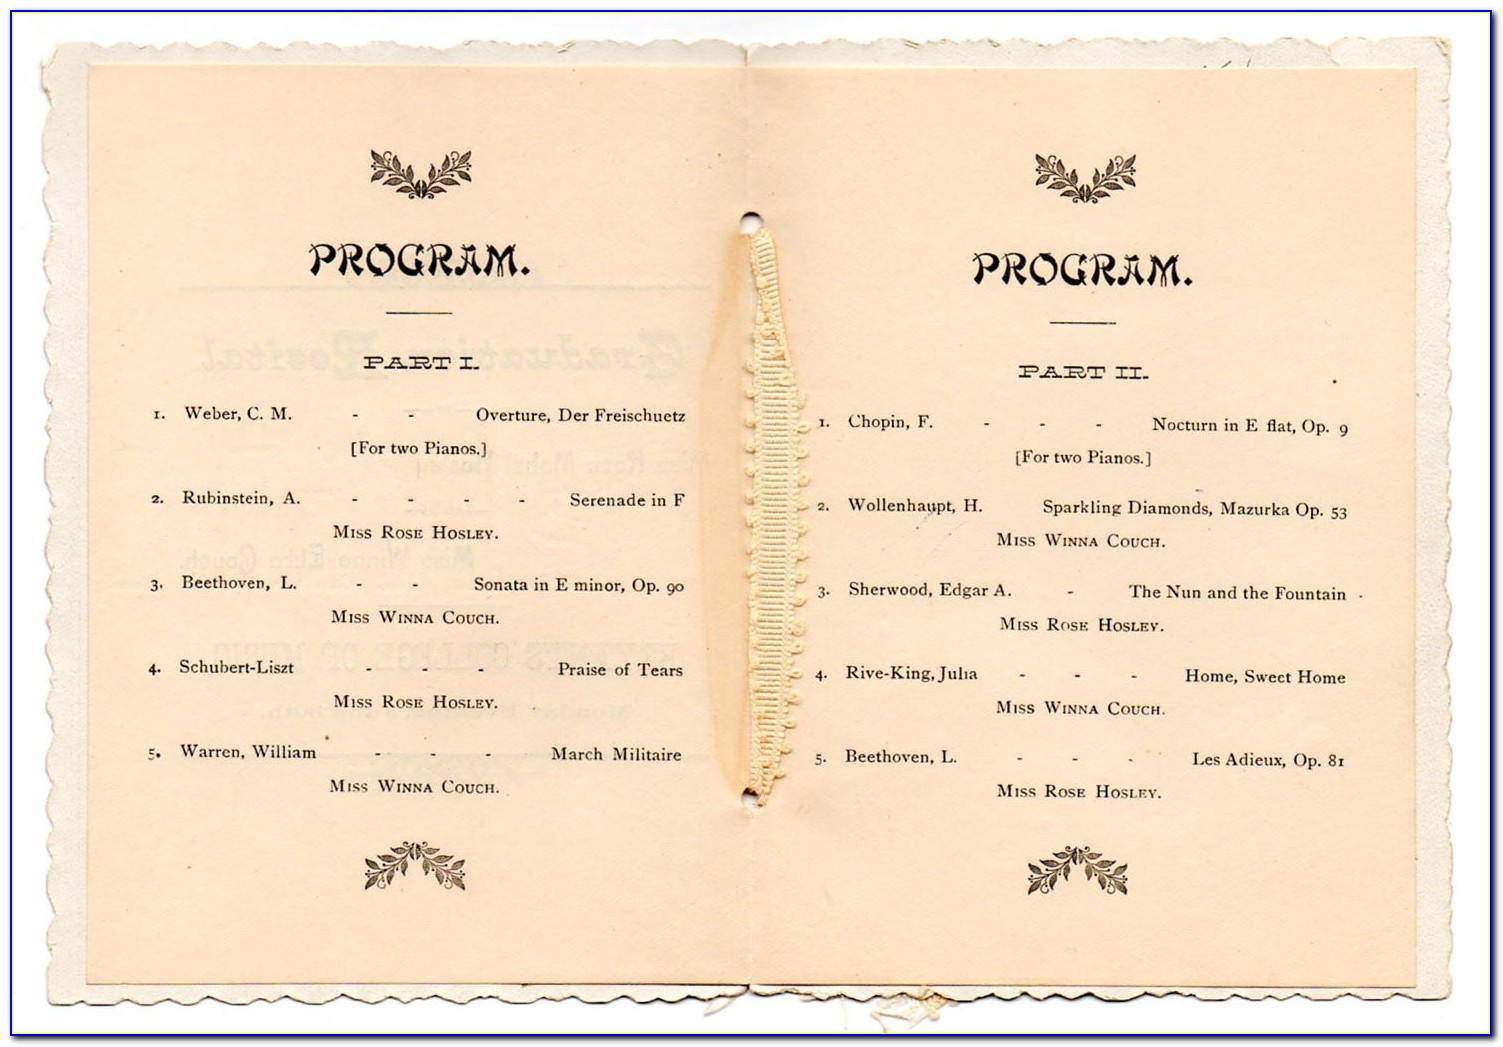 Kindergarten Graduation Ceremony Program Template